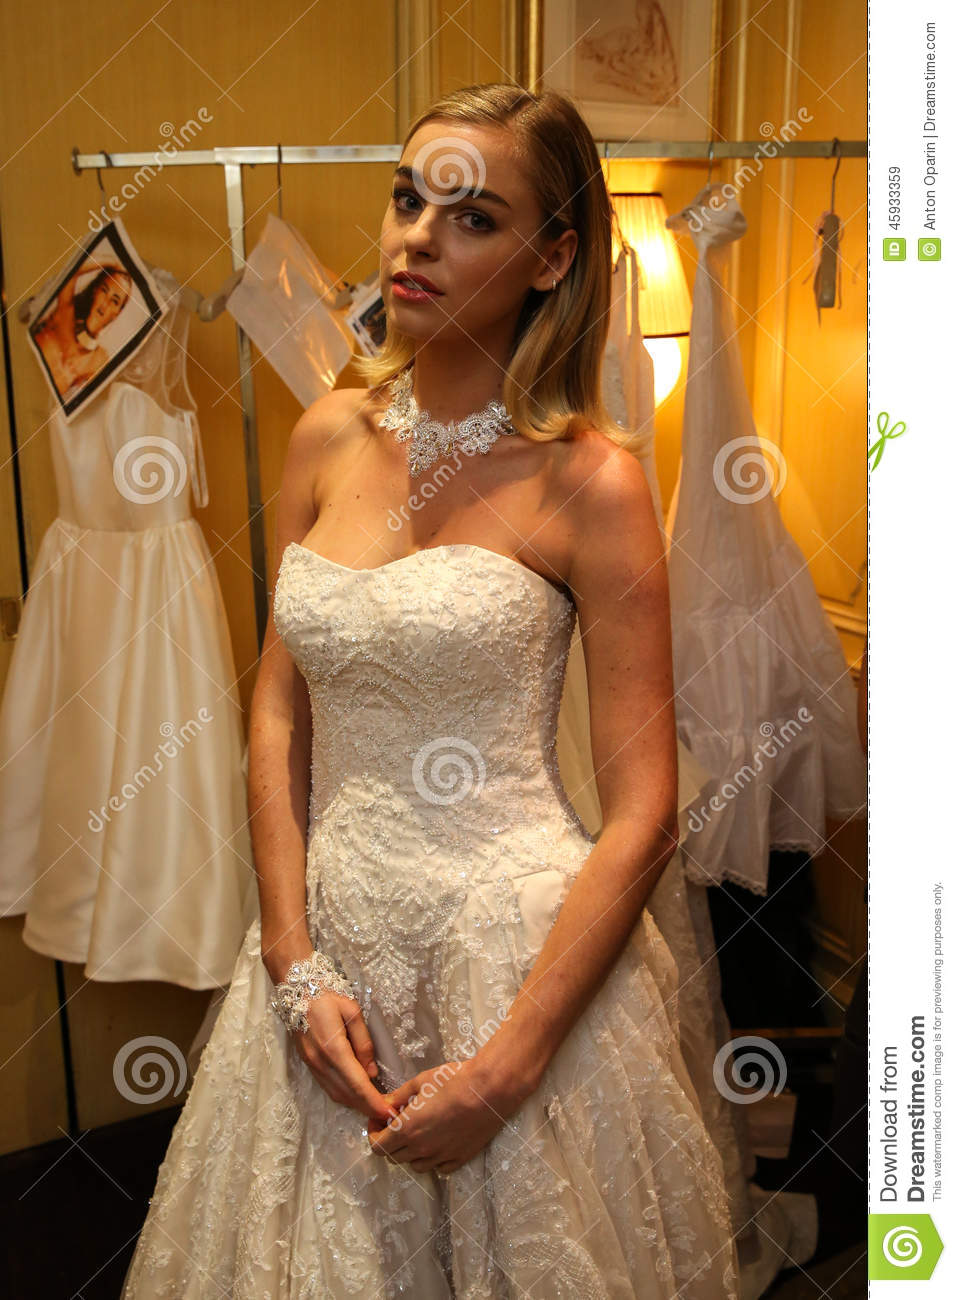 NEW YORK, NY - OCTOBER 09: A model getting ready backstage wearing Oleg Cassini Fall 2015 Bridal collection